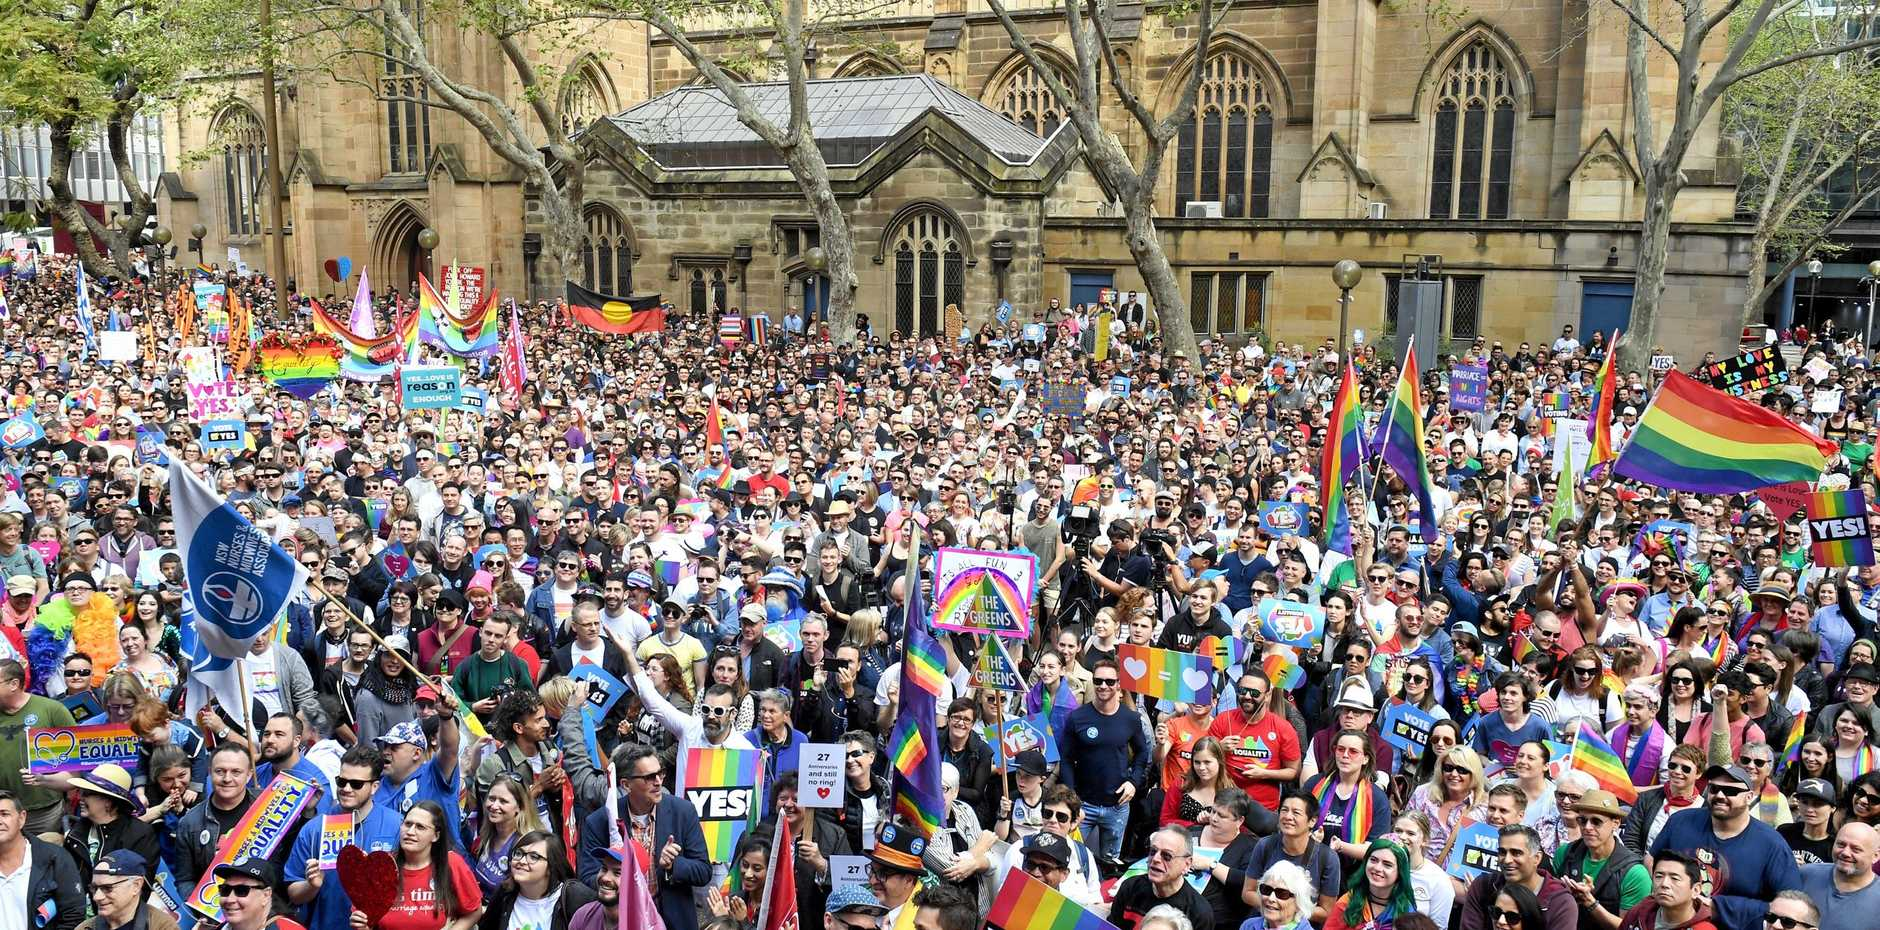 Supporters turn out for a marriage equality rally in Sydney on Sunday.